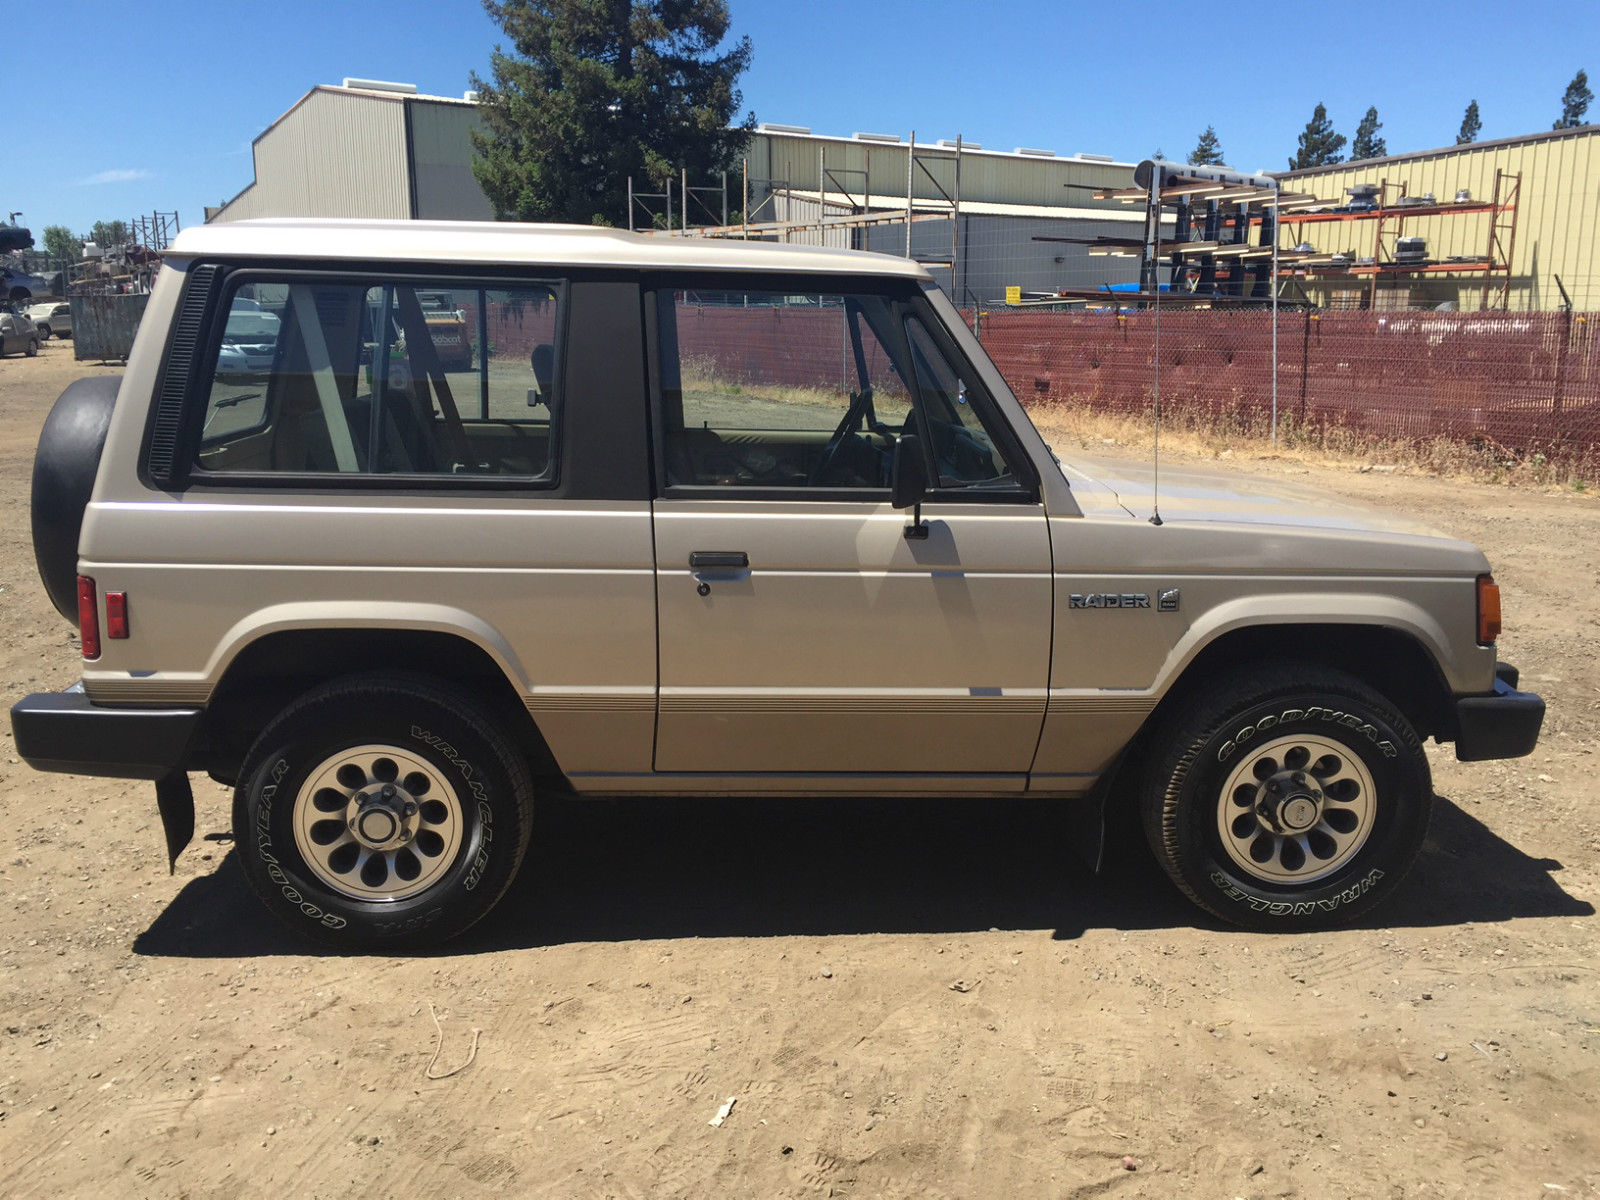 1989 Dodge Raider For Sale Craigslist Classifieds Archives